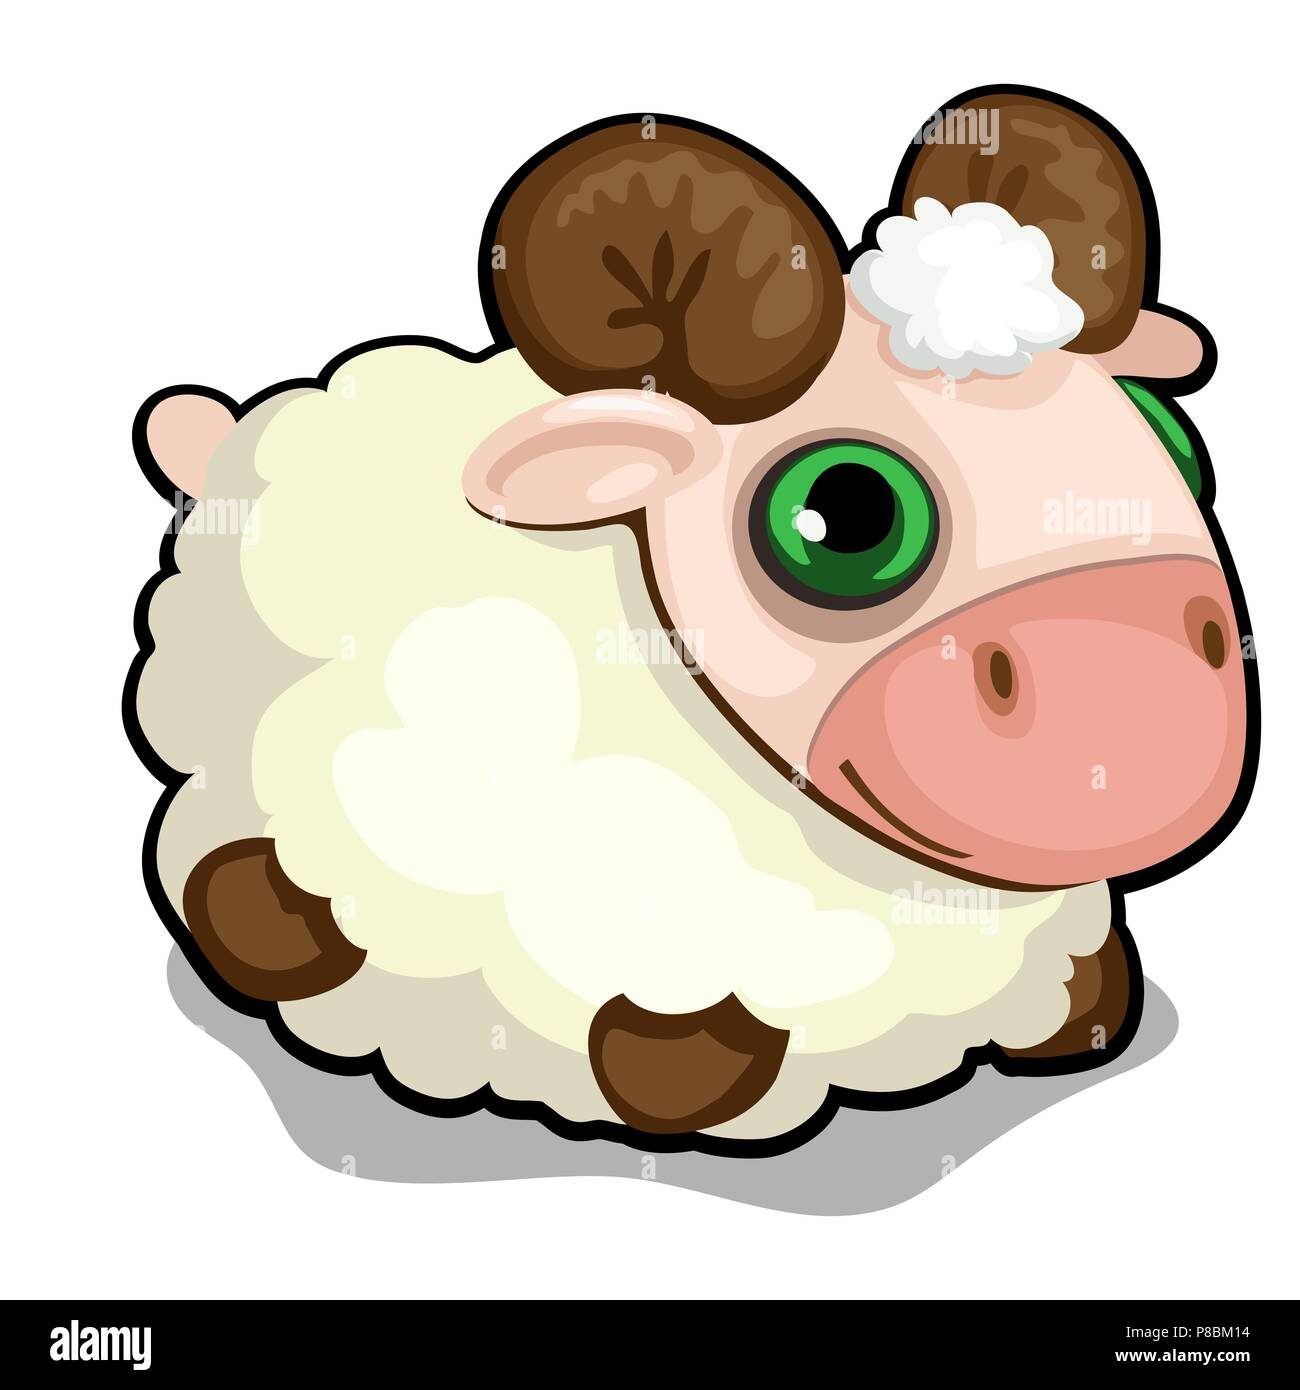 Toy sheep with green eyes isolated on white background. Vector cartoon close-up illustration. - Stock Vector